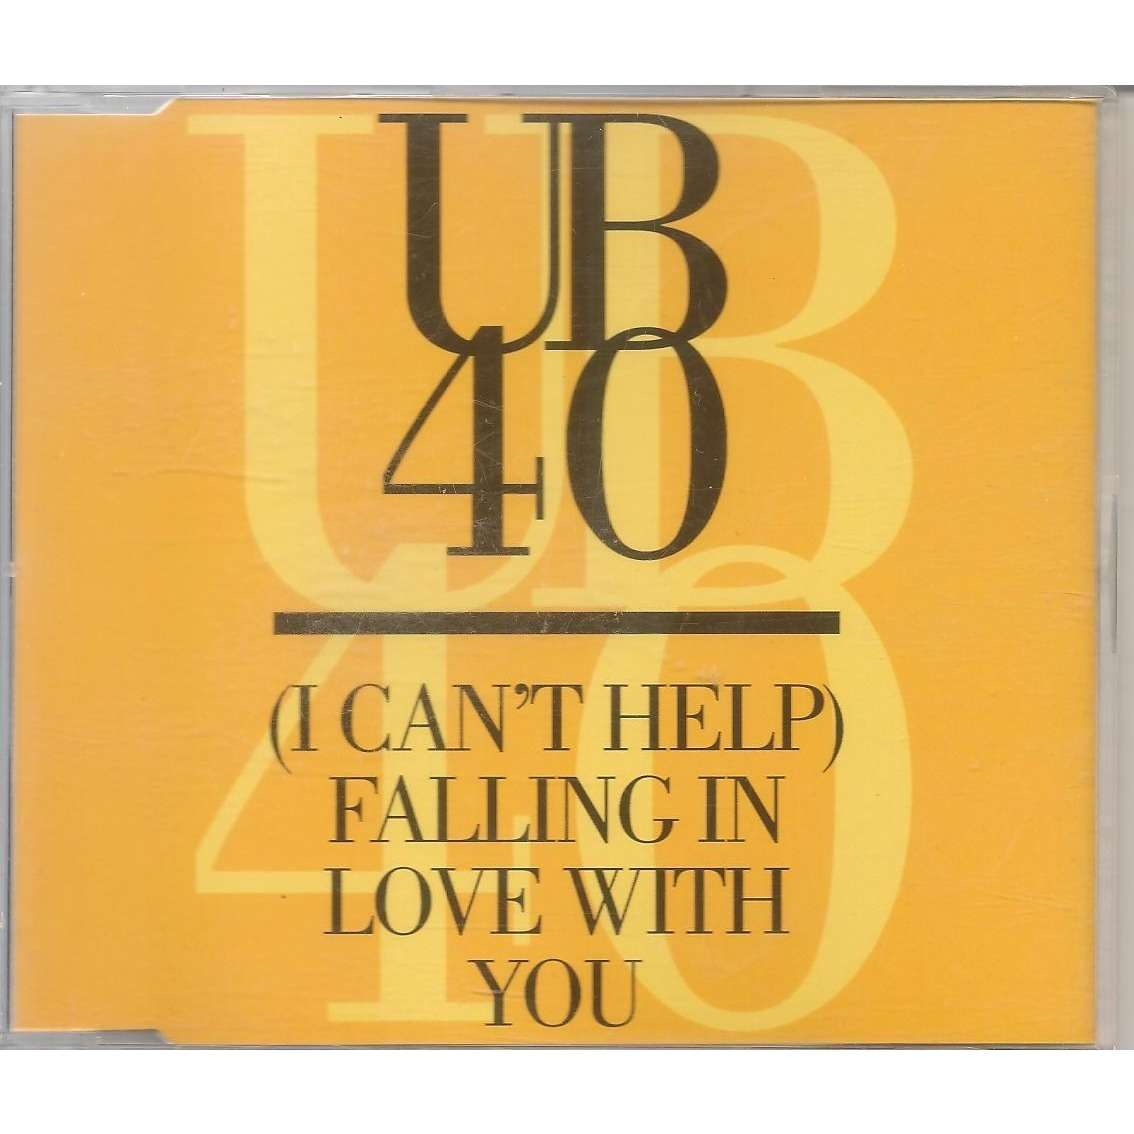 (I can't help) falling in love with you by Ub40, MCD with ...